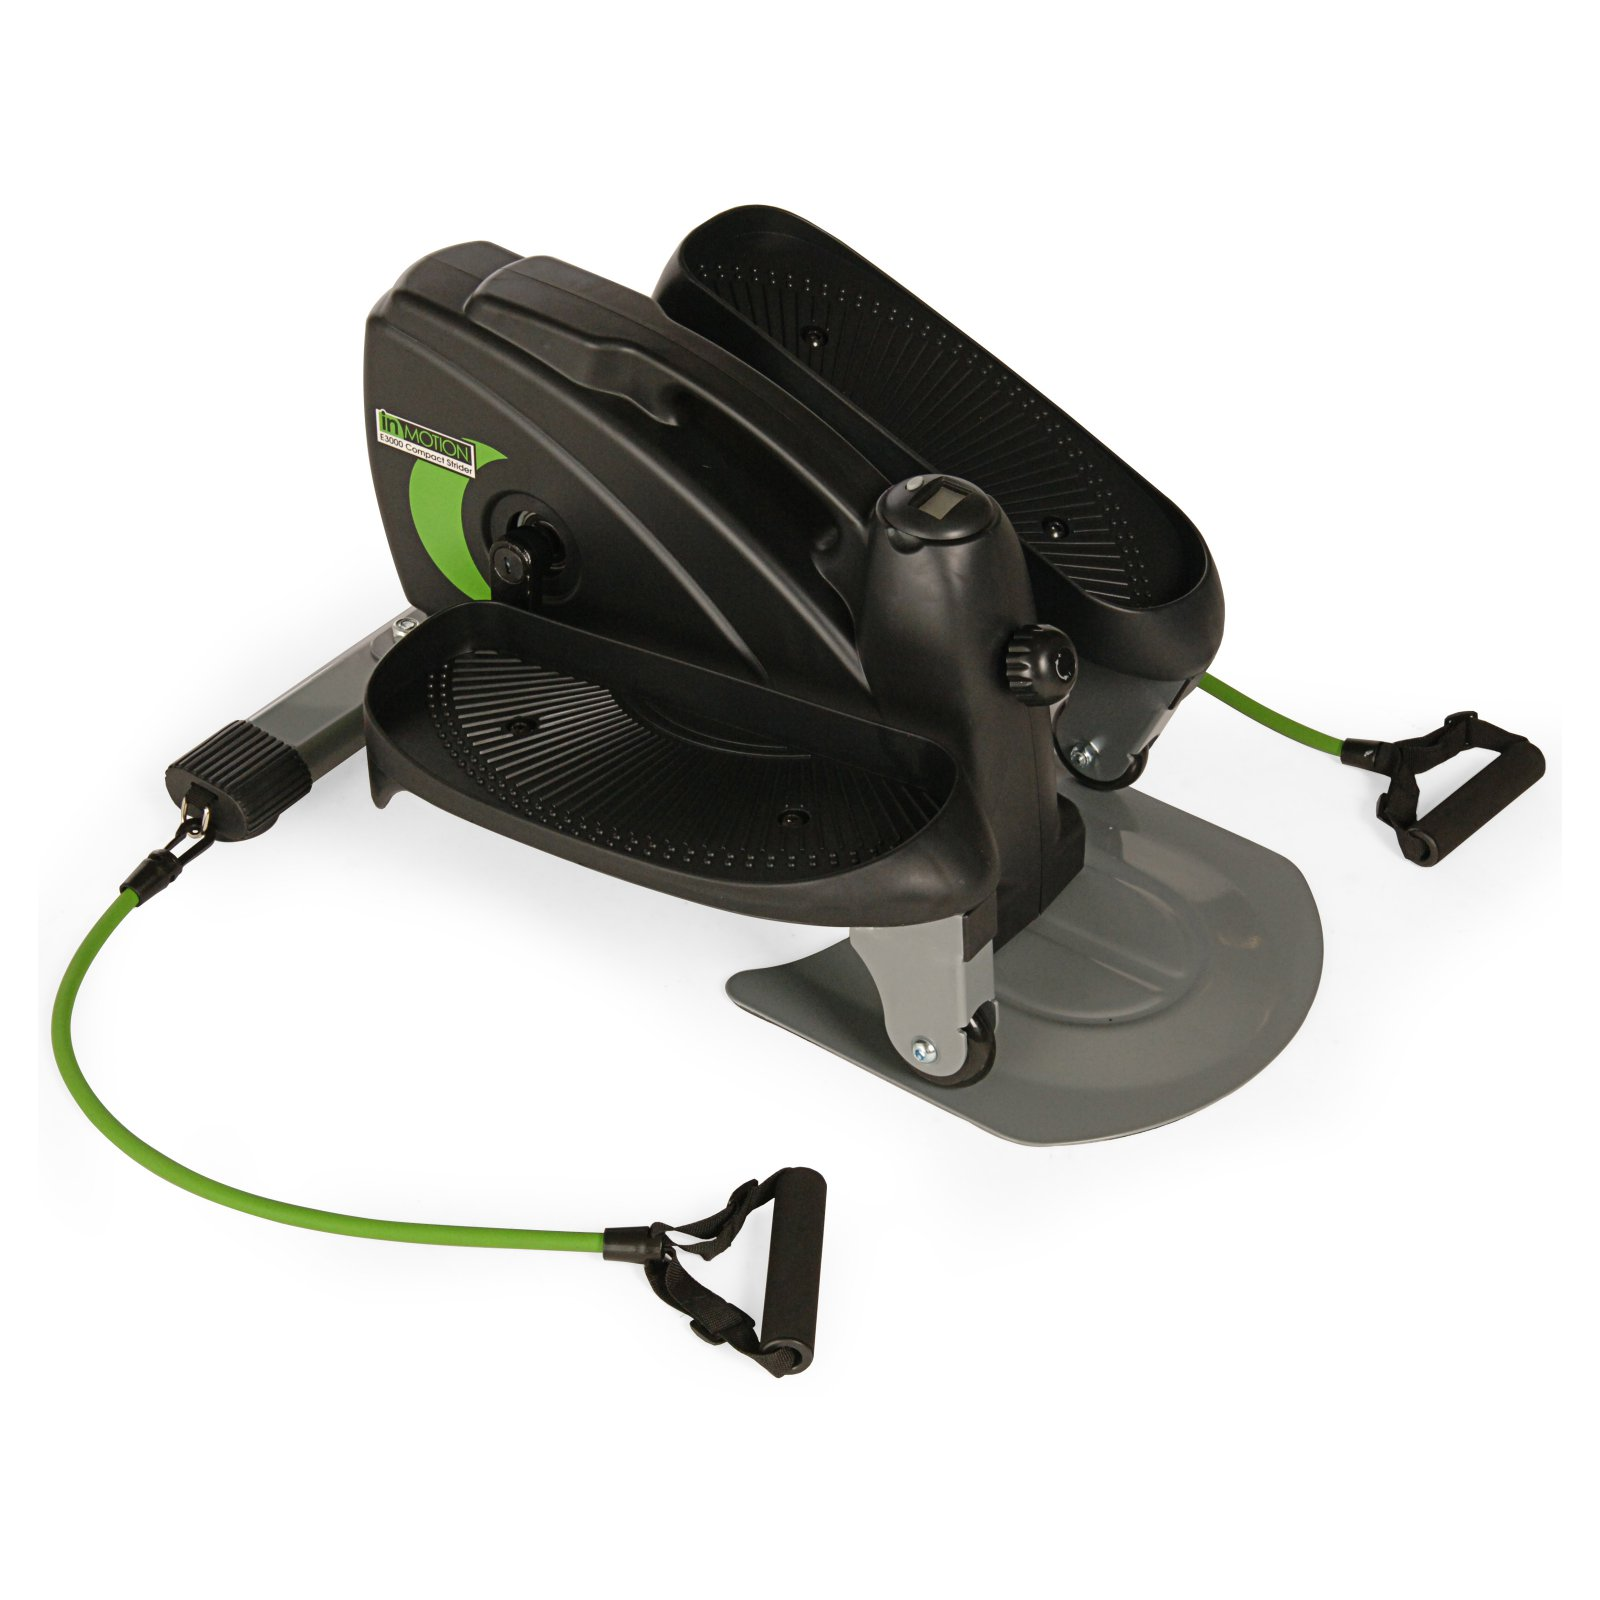 Stamina InMotion Strider with Cords and DVD